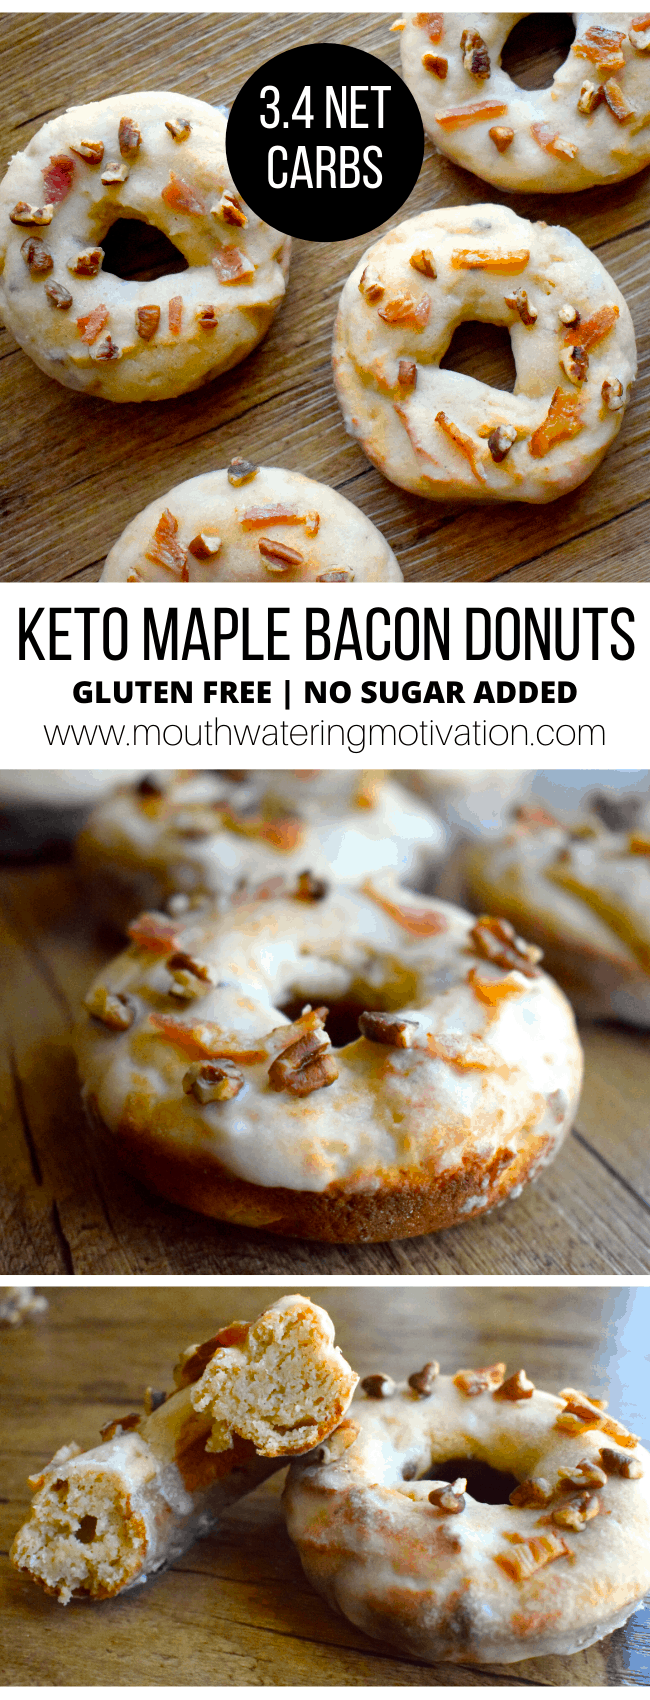 keto maple bacon donuts